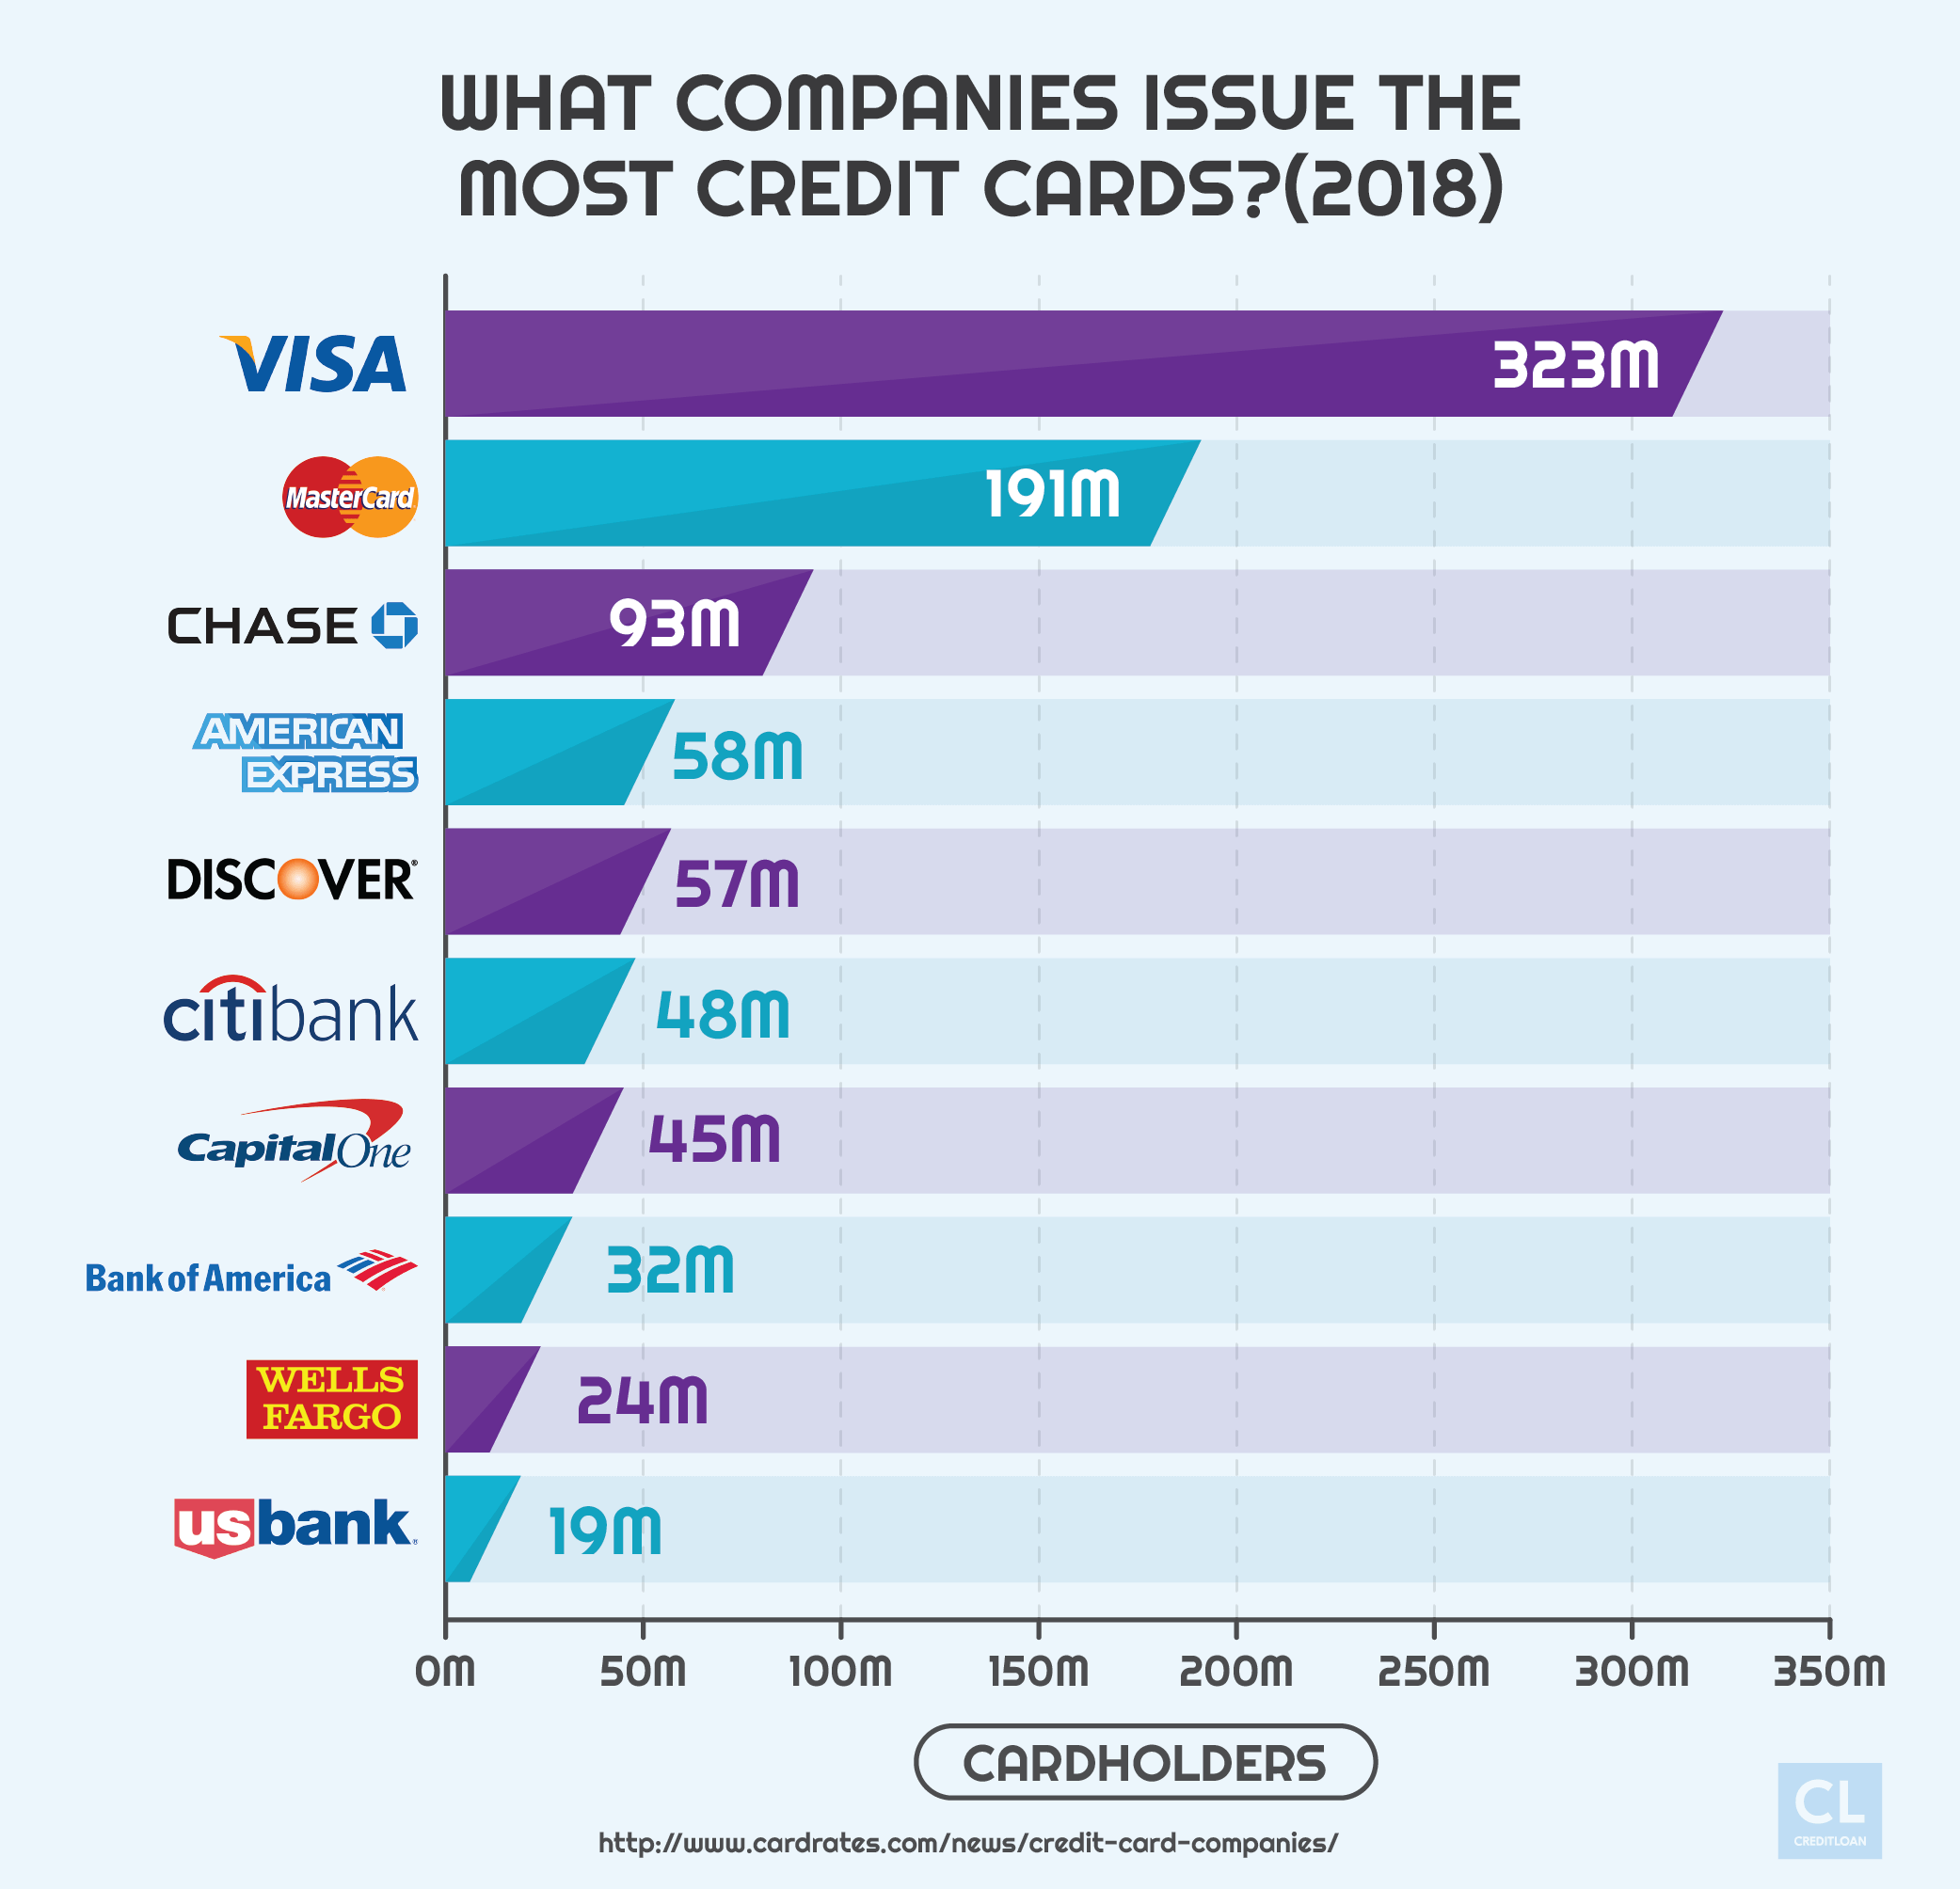 Companies Issuing the Most Credit Cards in 2018